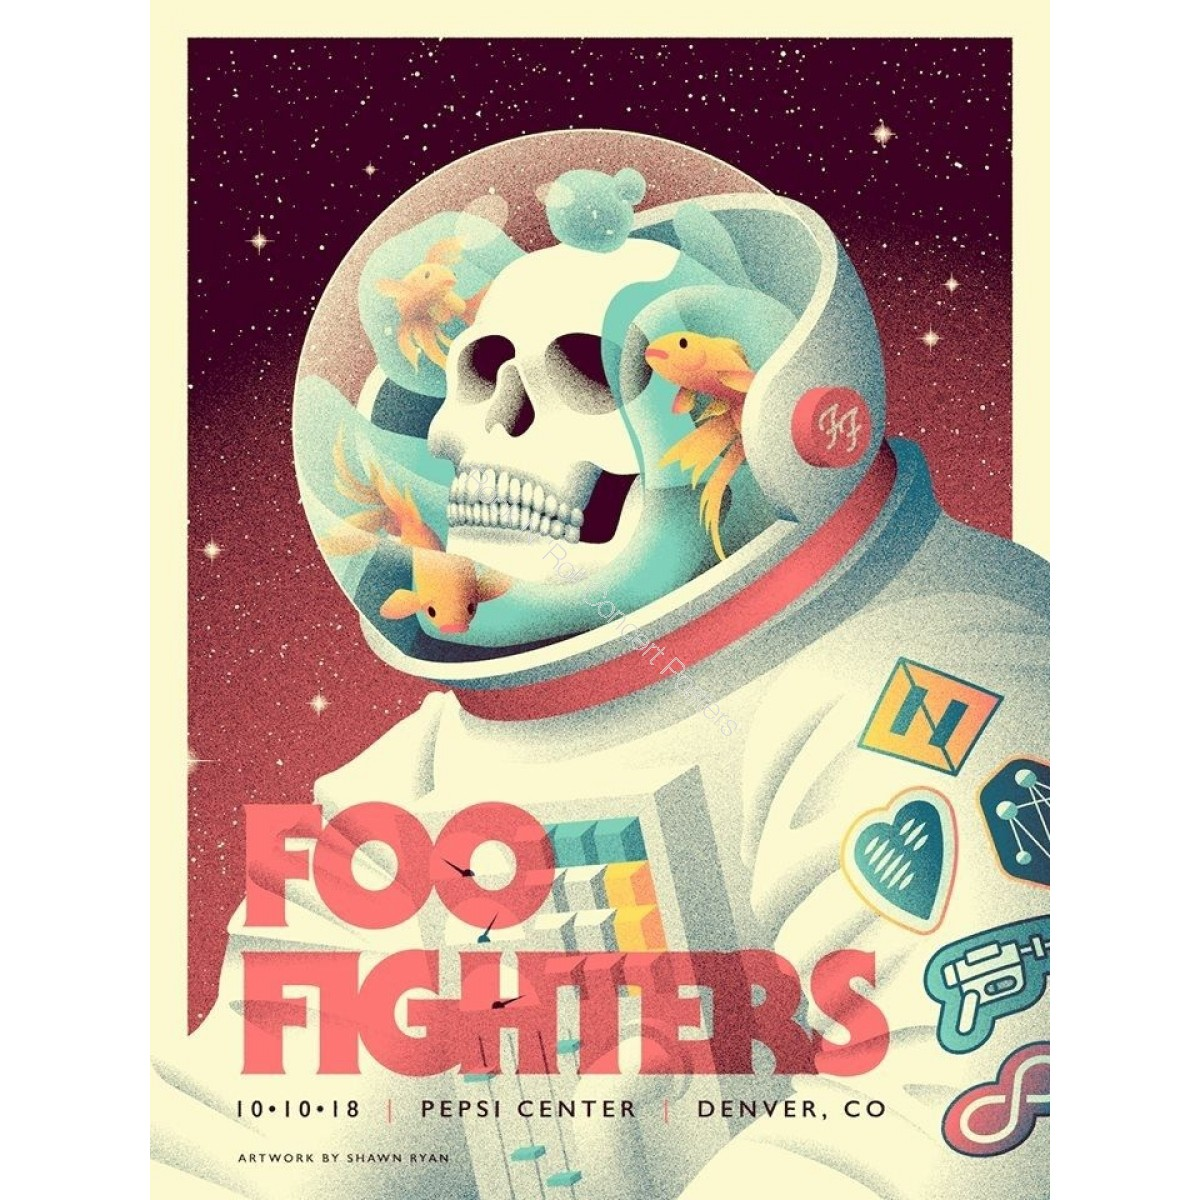 Foo Fighters Pepsi Center Denver 10/10/18 Official Poster 1st Edition of 425